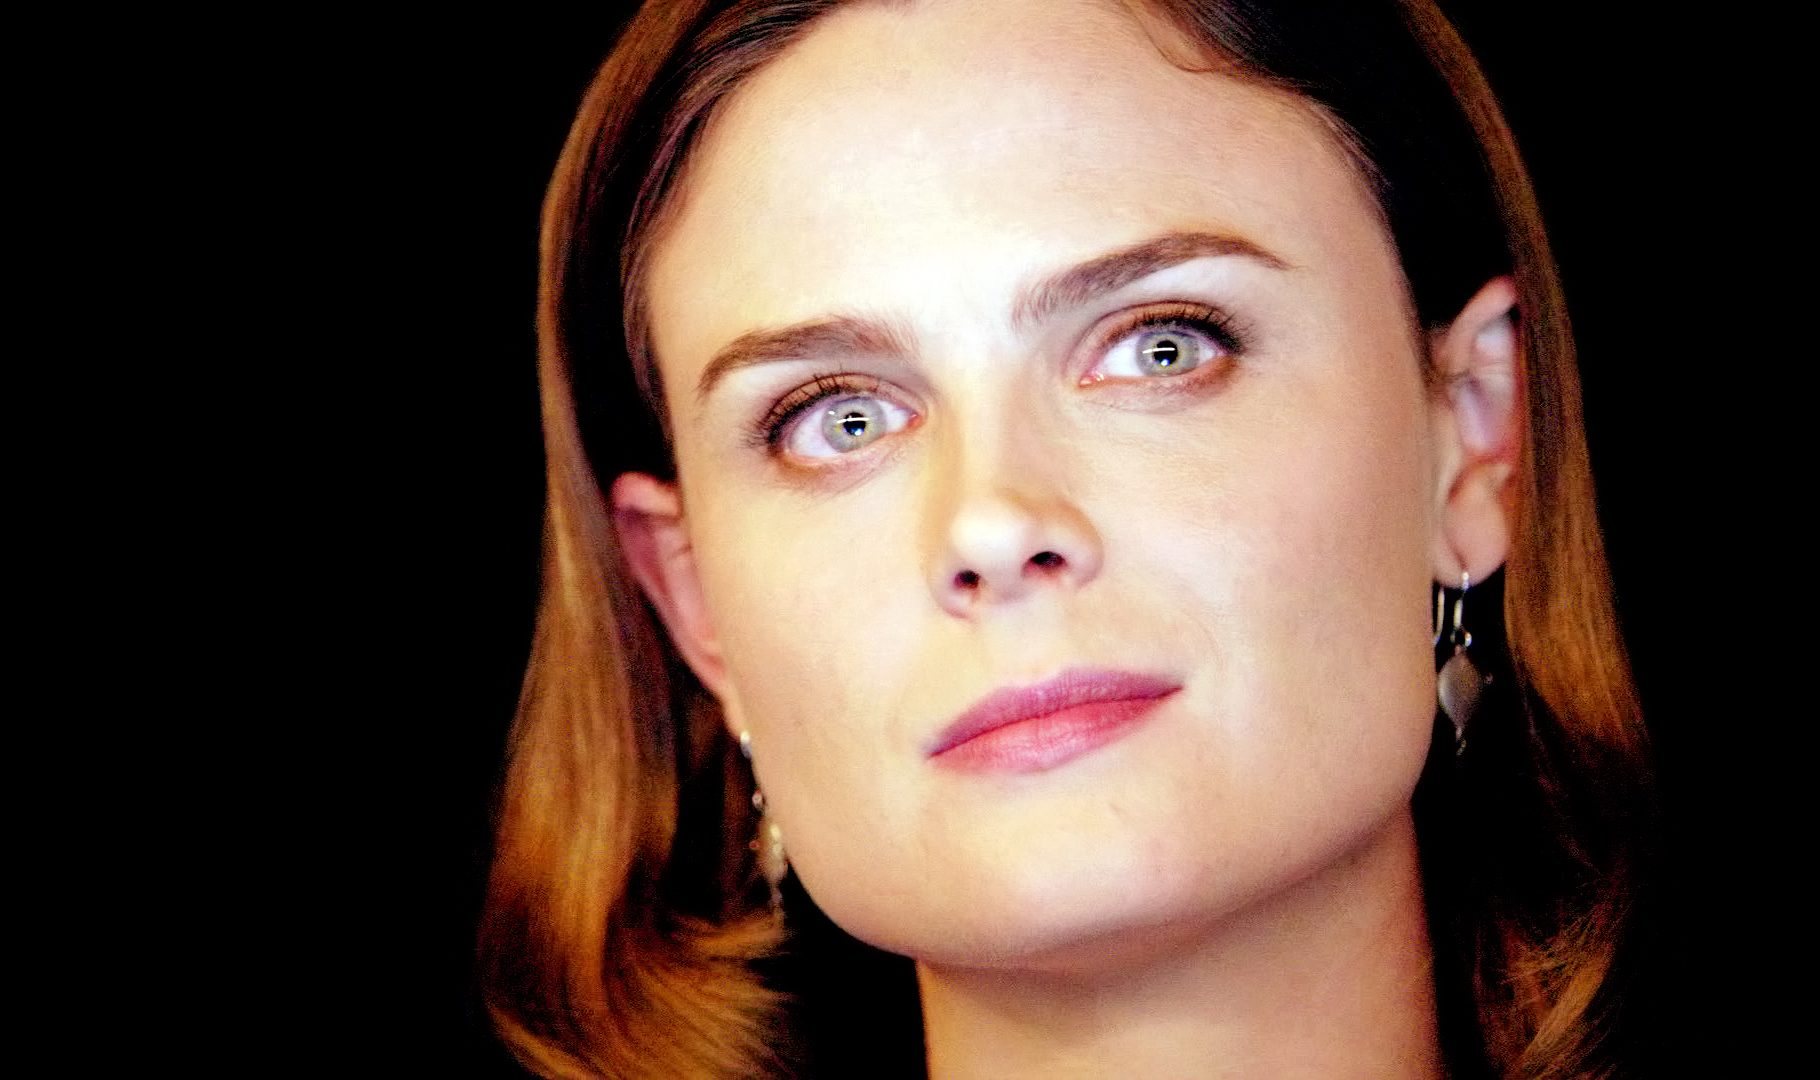 Emily Deschanel. - Bones Fan Art (16441282) - Fanpop